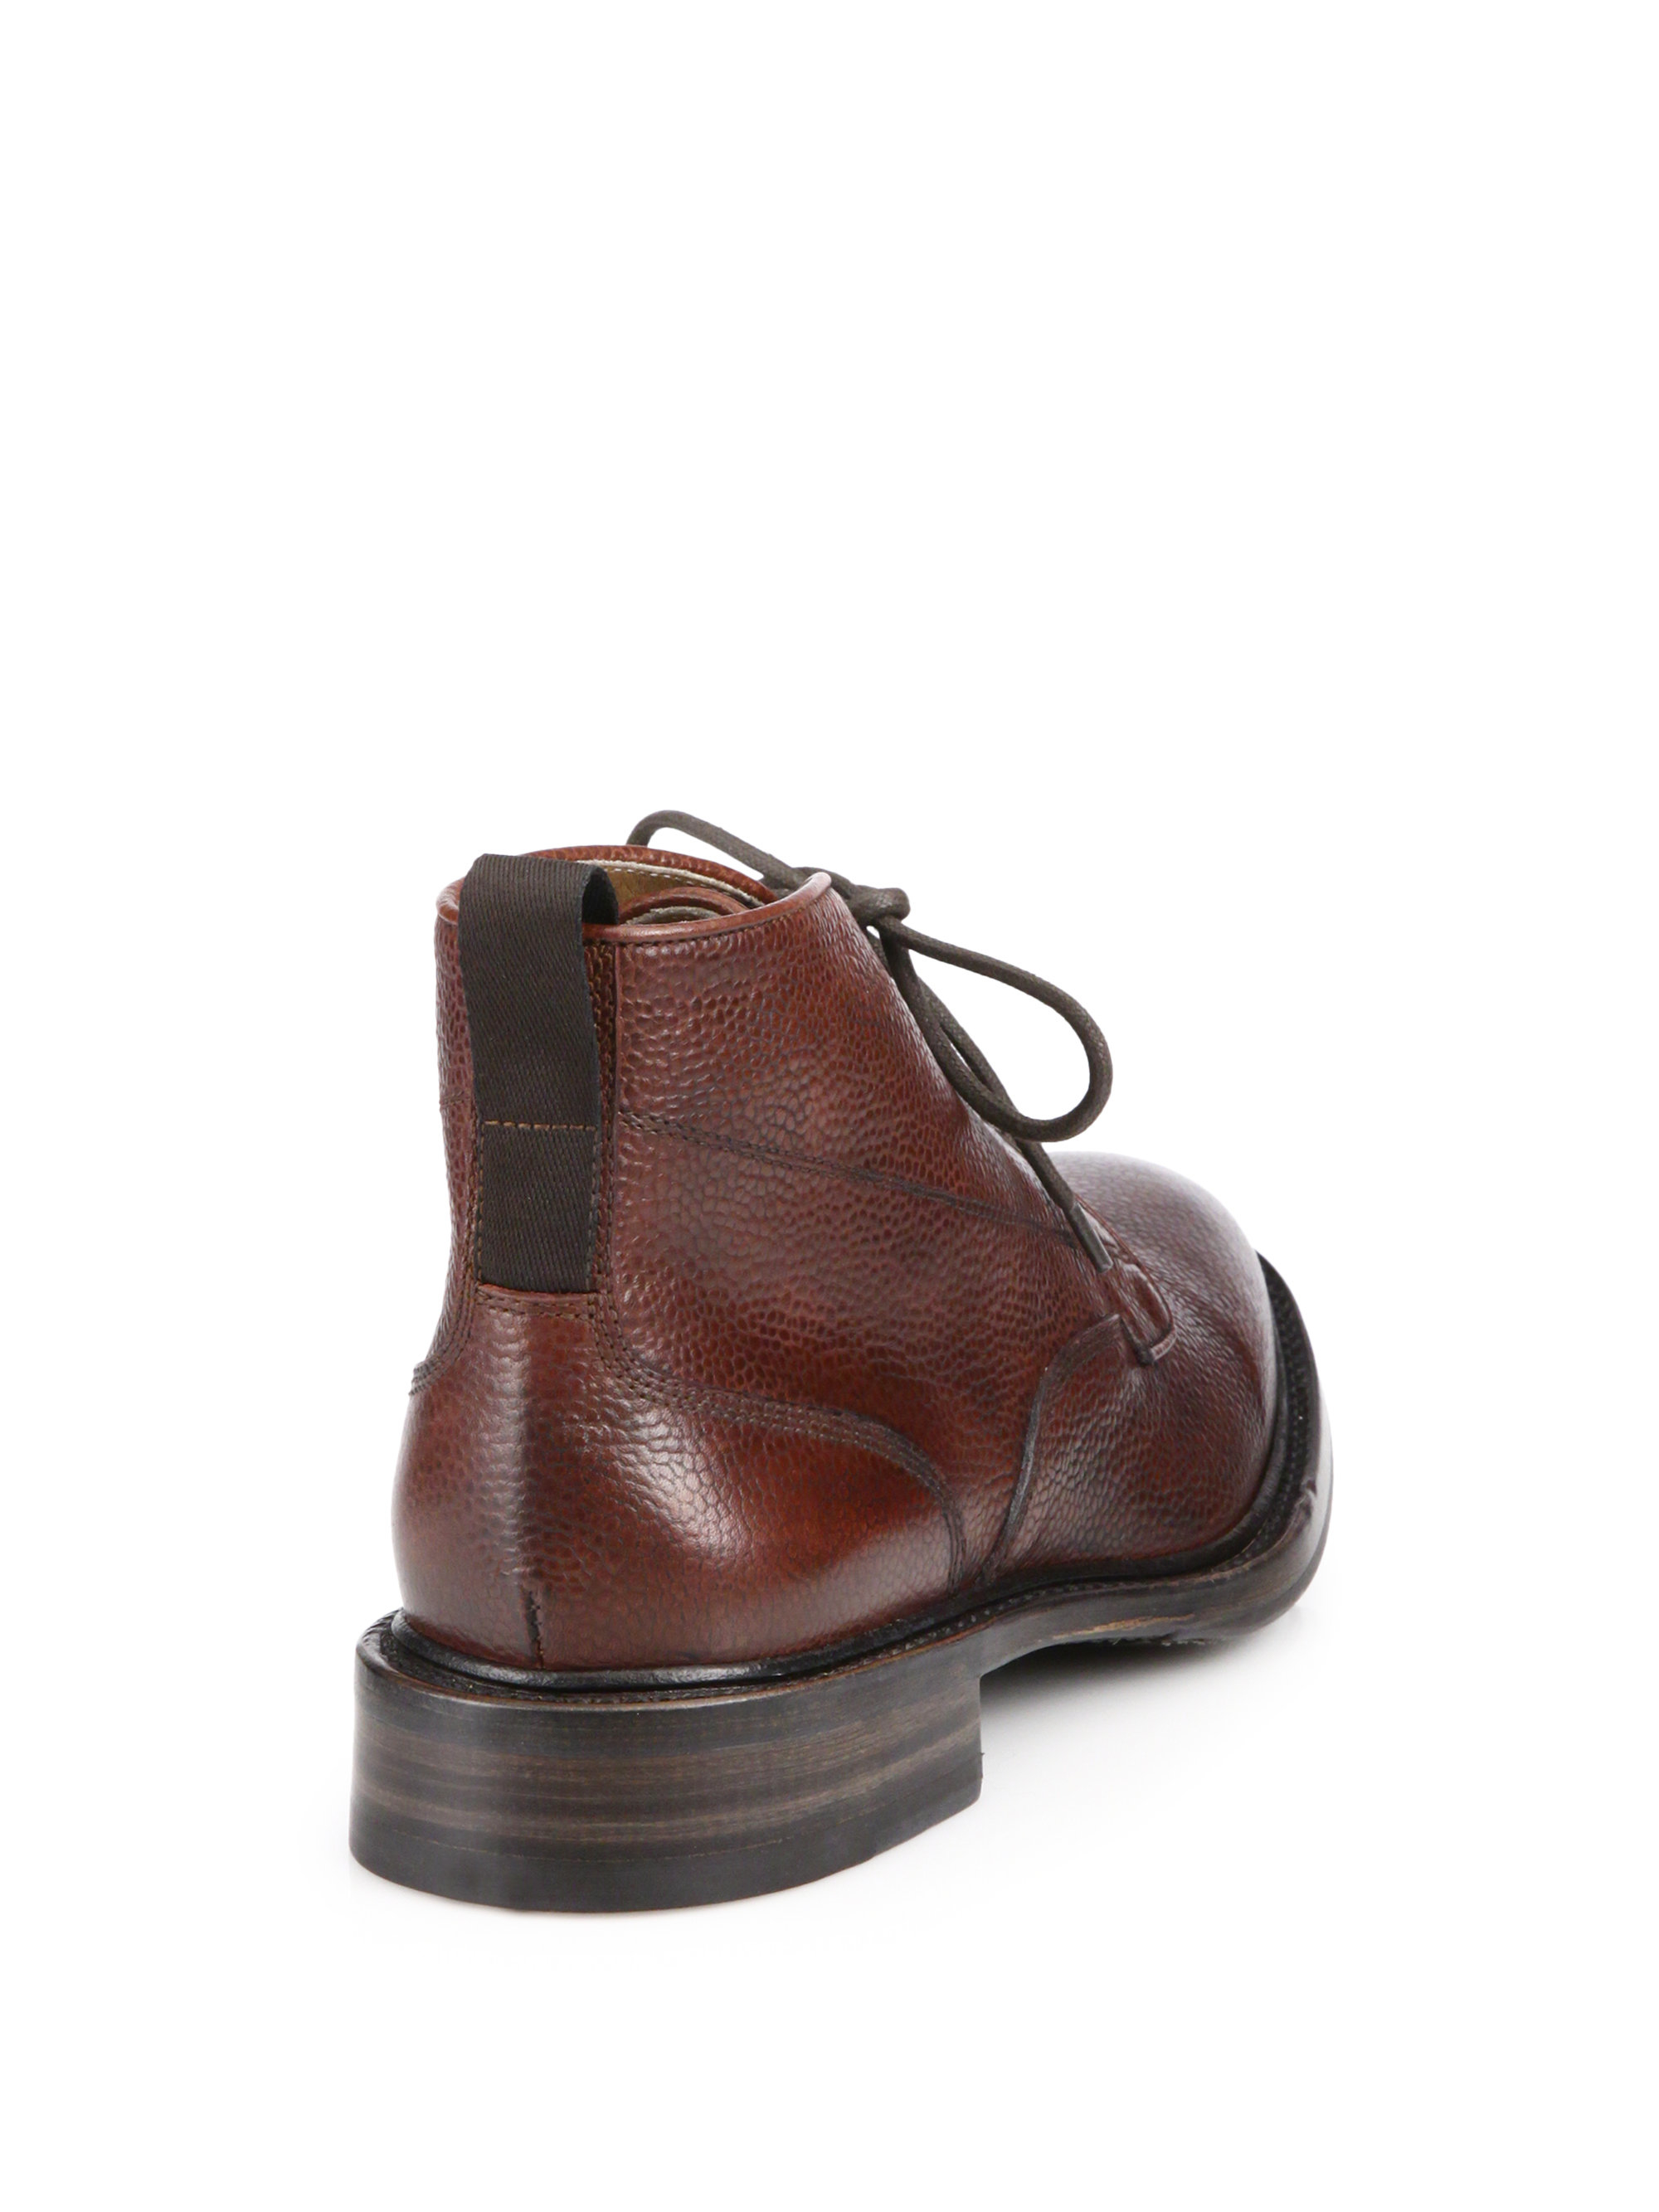 Rag & bone Spencer Leather Chukka Boots in Brown for Men   Lyst